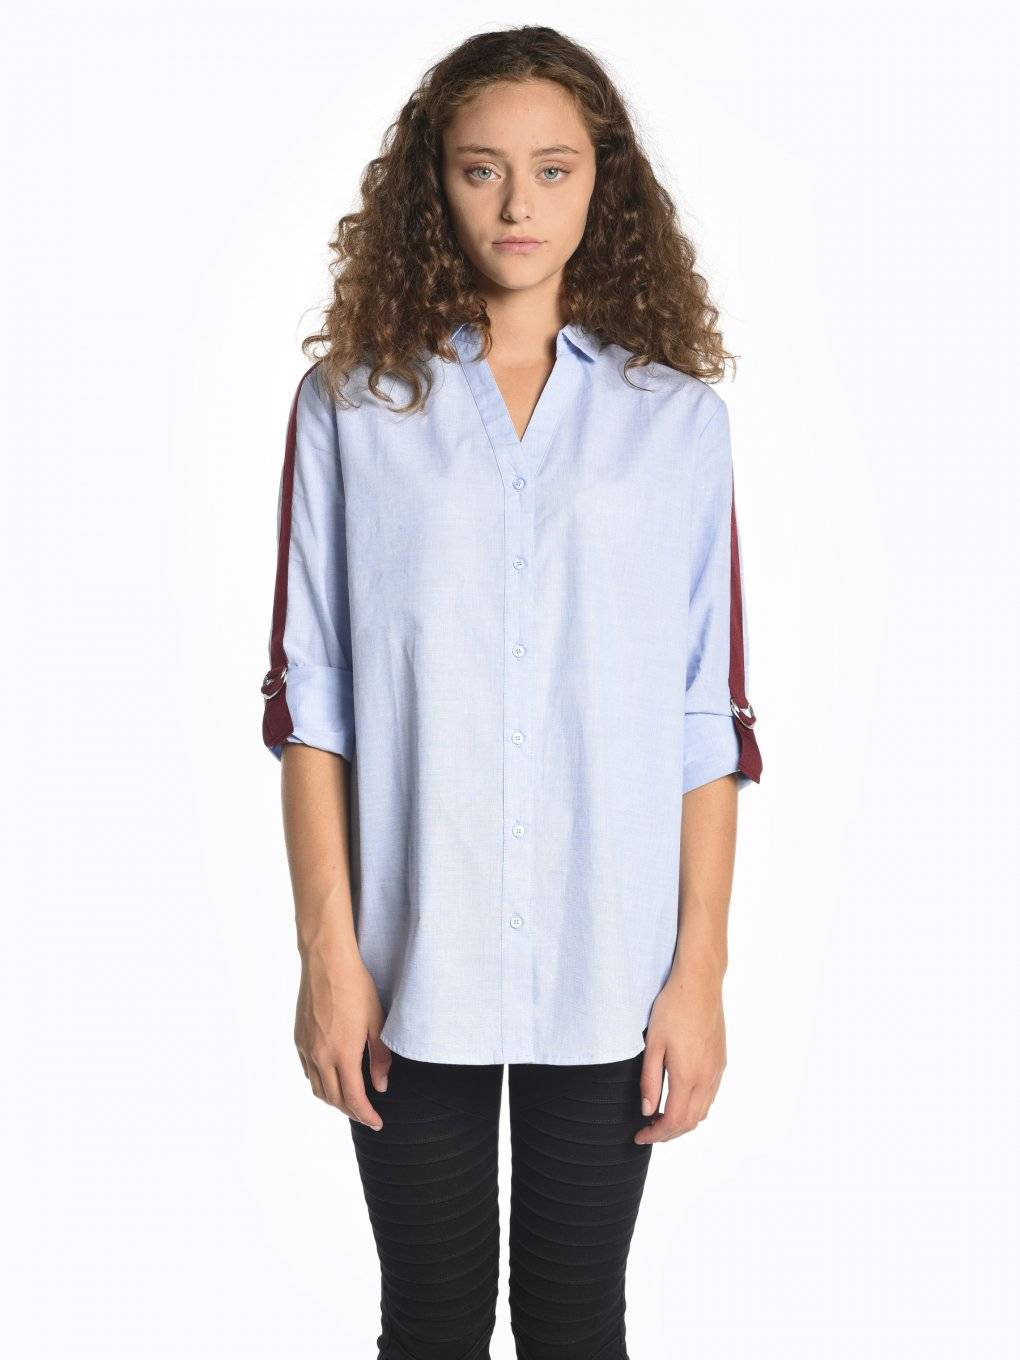 Oversized fit shirt with contrast tapes